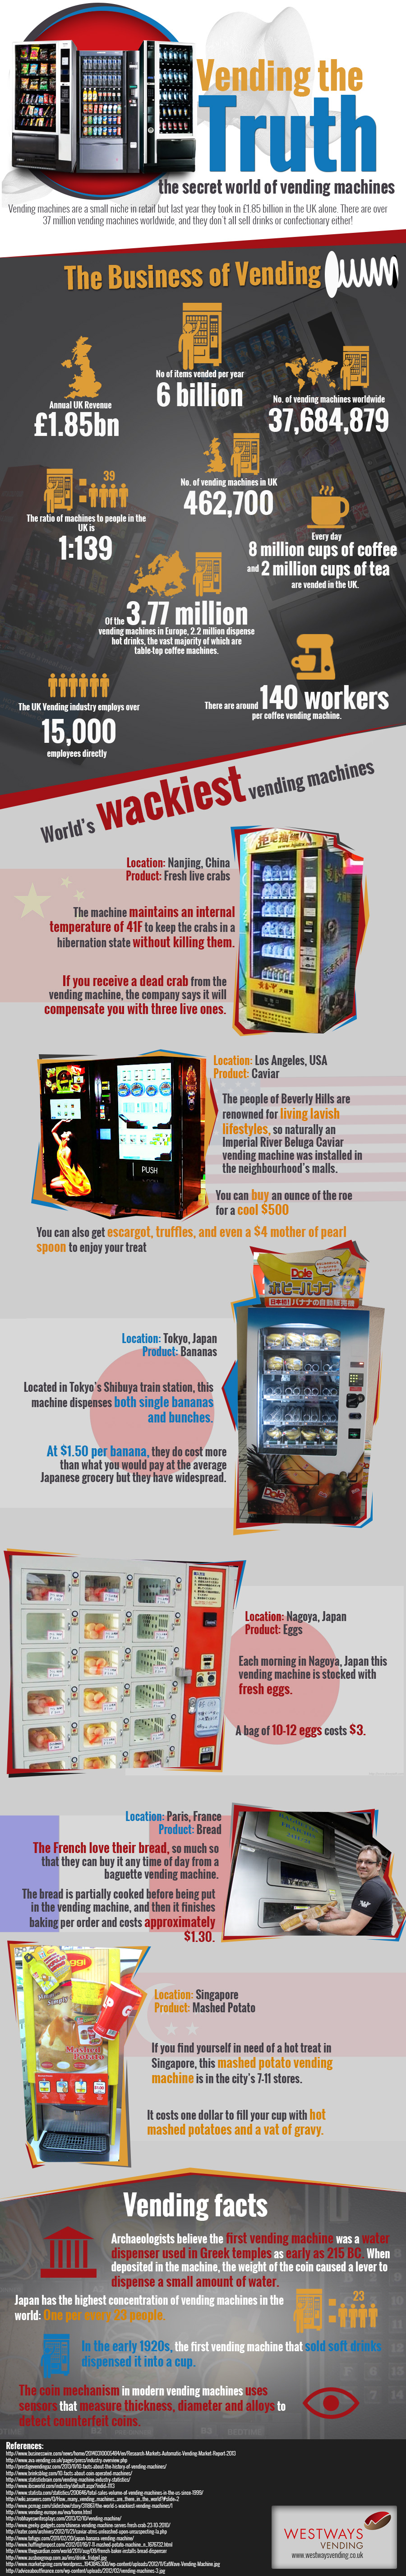 The Secret World of Vending Machines